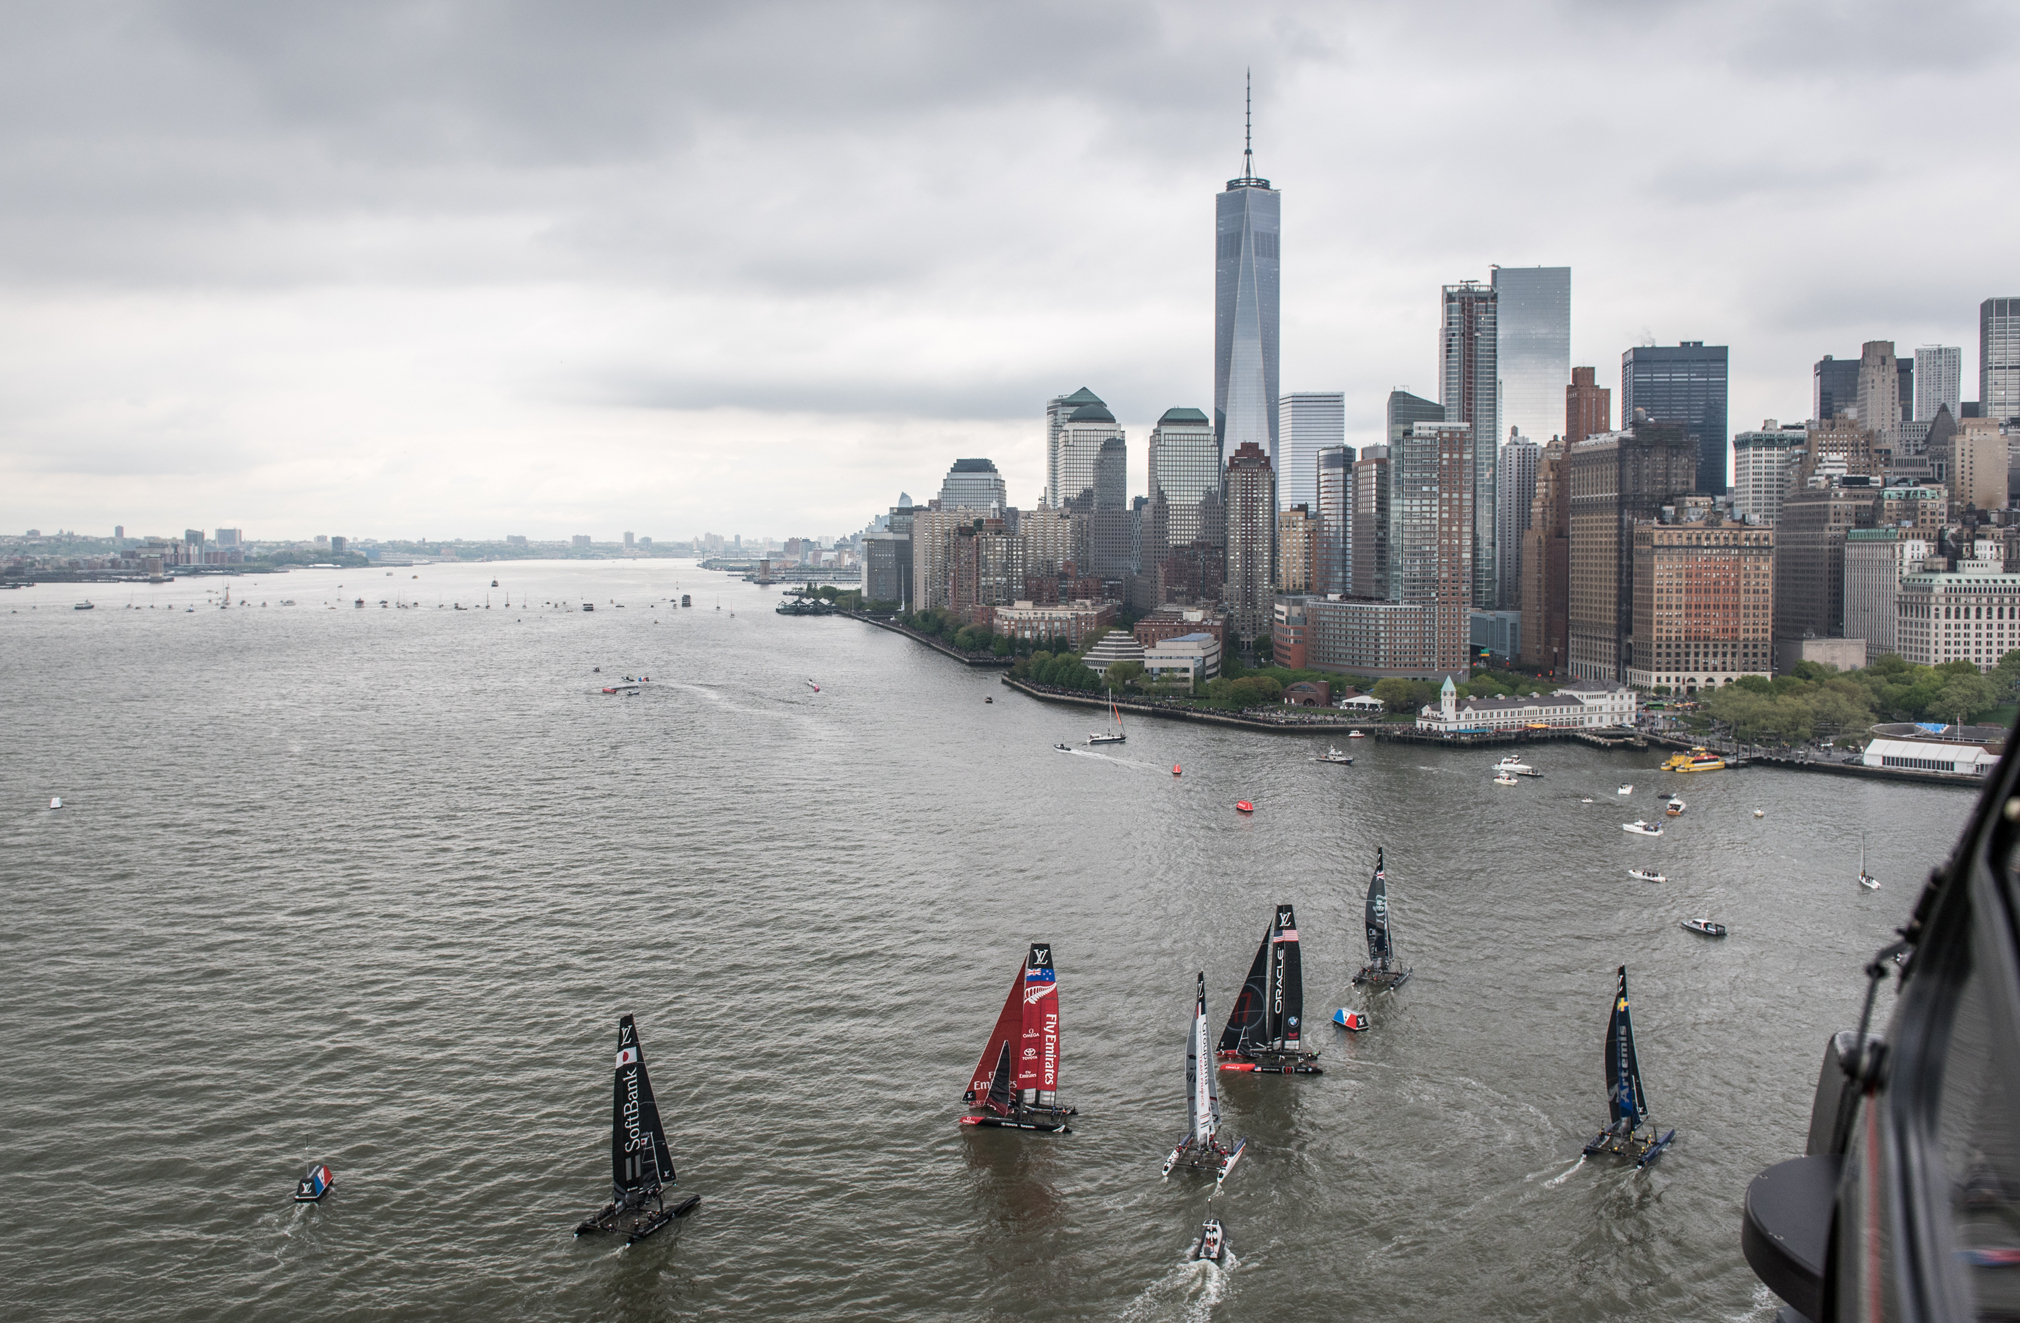 A day at the Louis Vuitton America's Cup